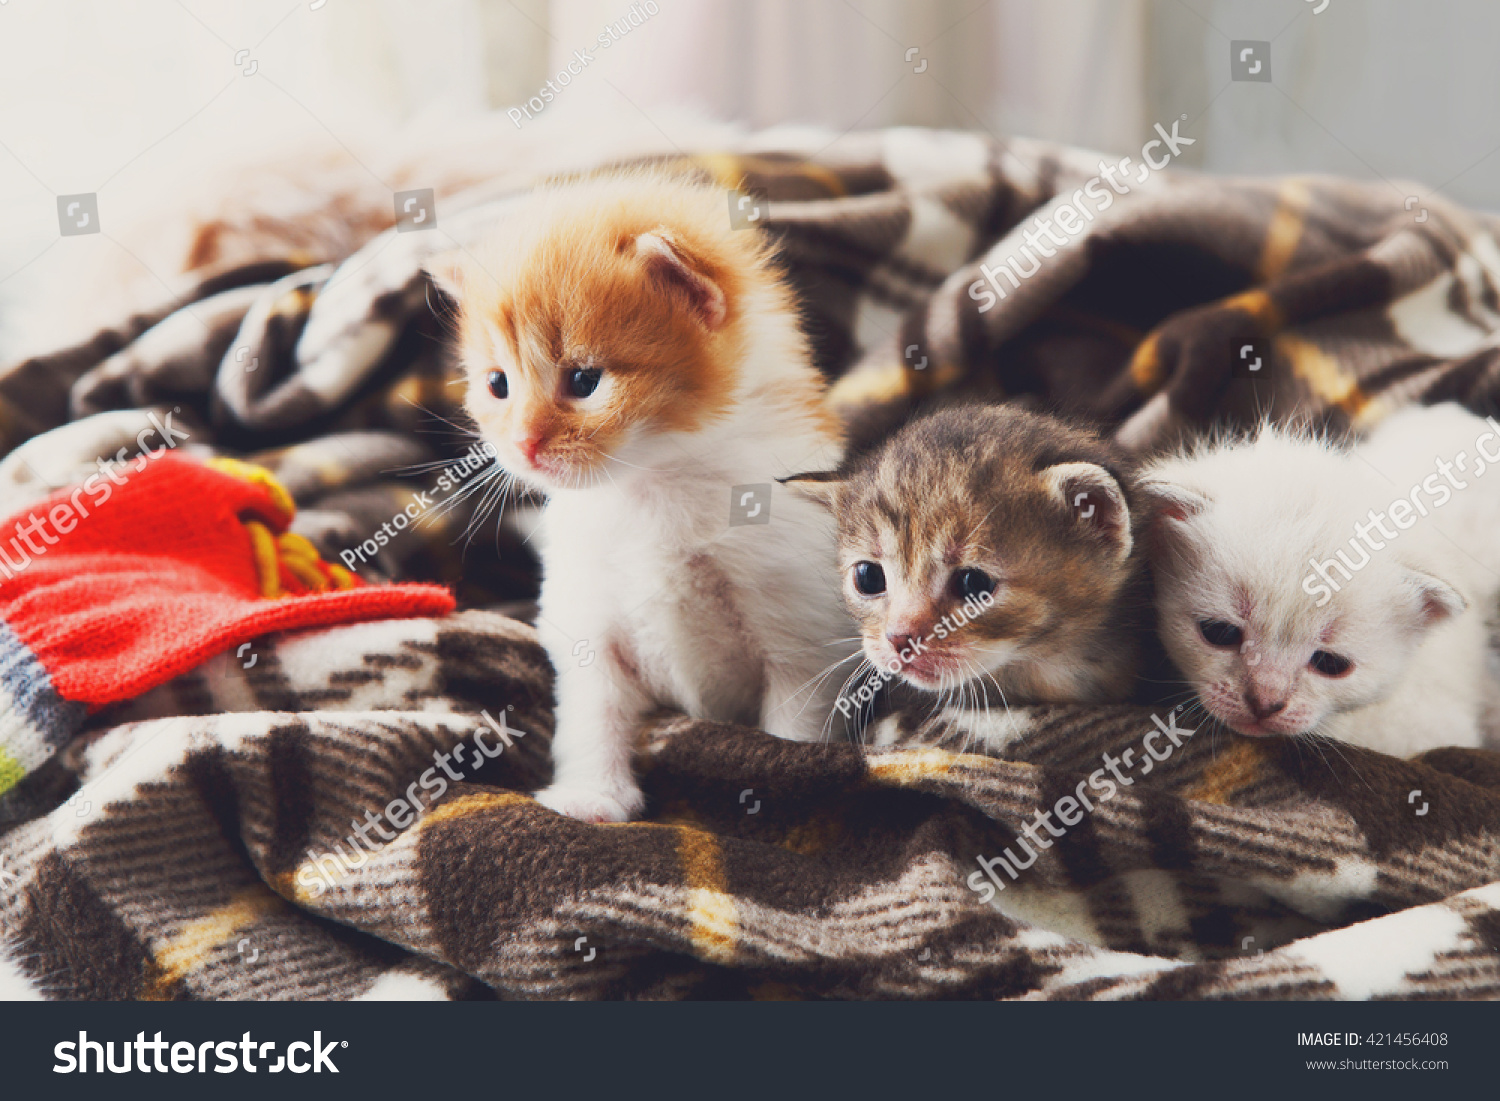 Kittens and mittens White Red and grey newborn kittens in a plaid blanket Sweet adorable tiny kittens on a serenity blue wood play with cat toy and mittens Funny kittens crawling and meowing